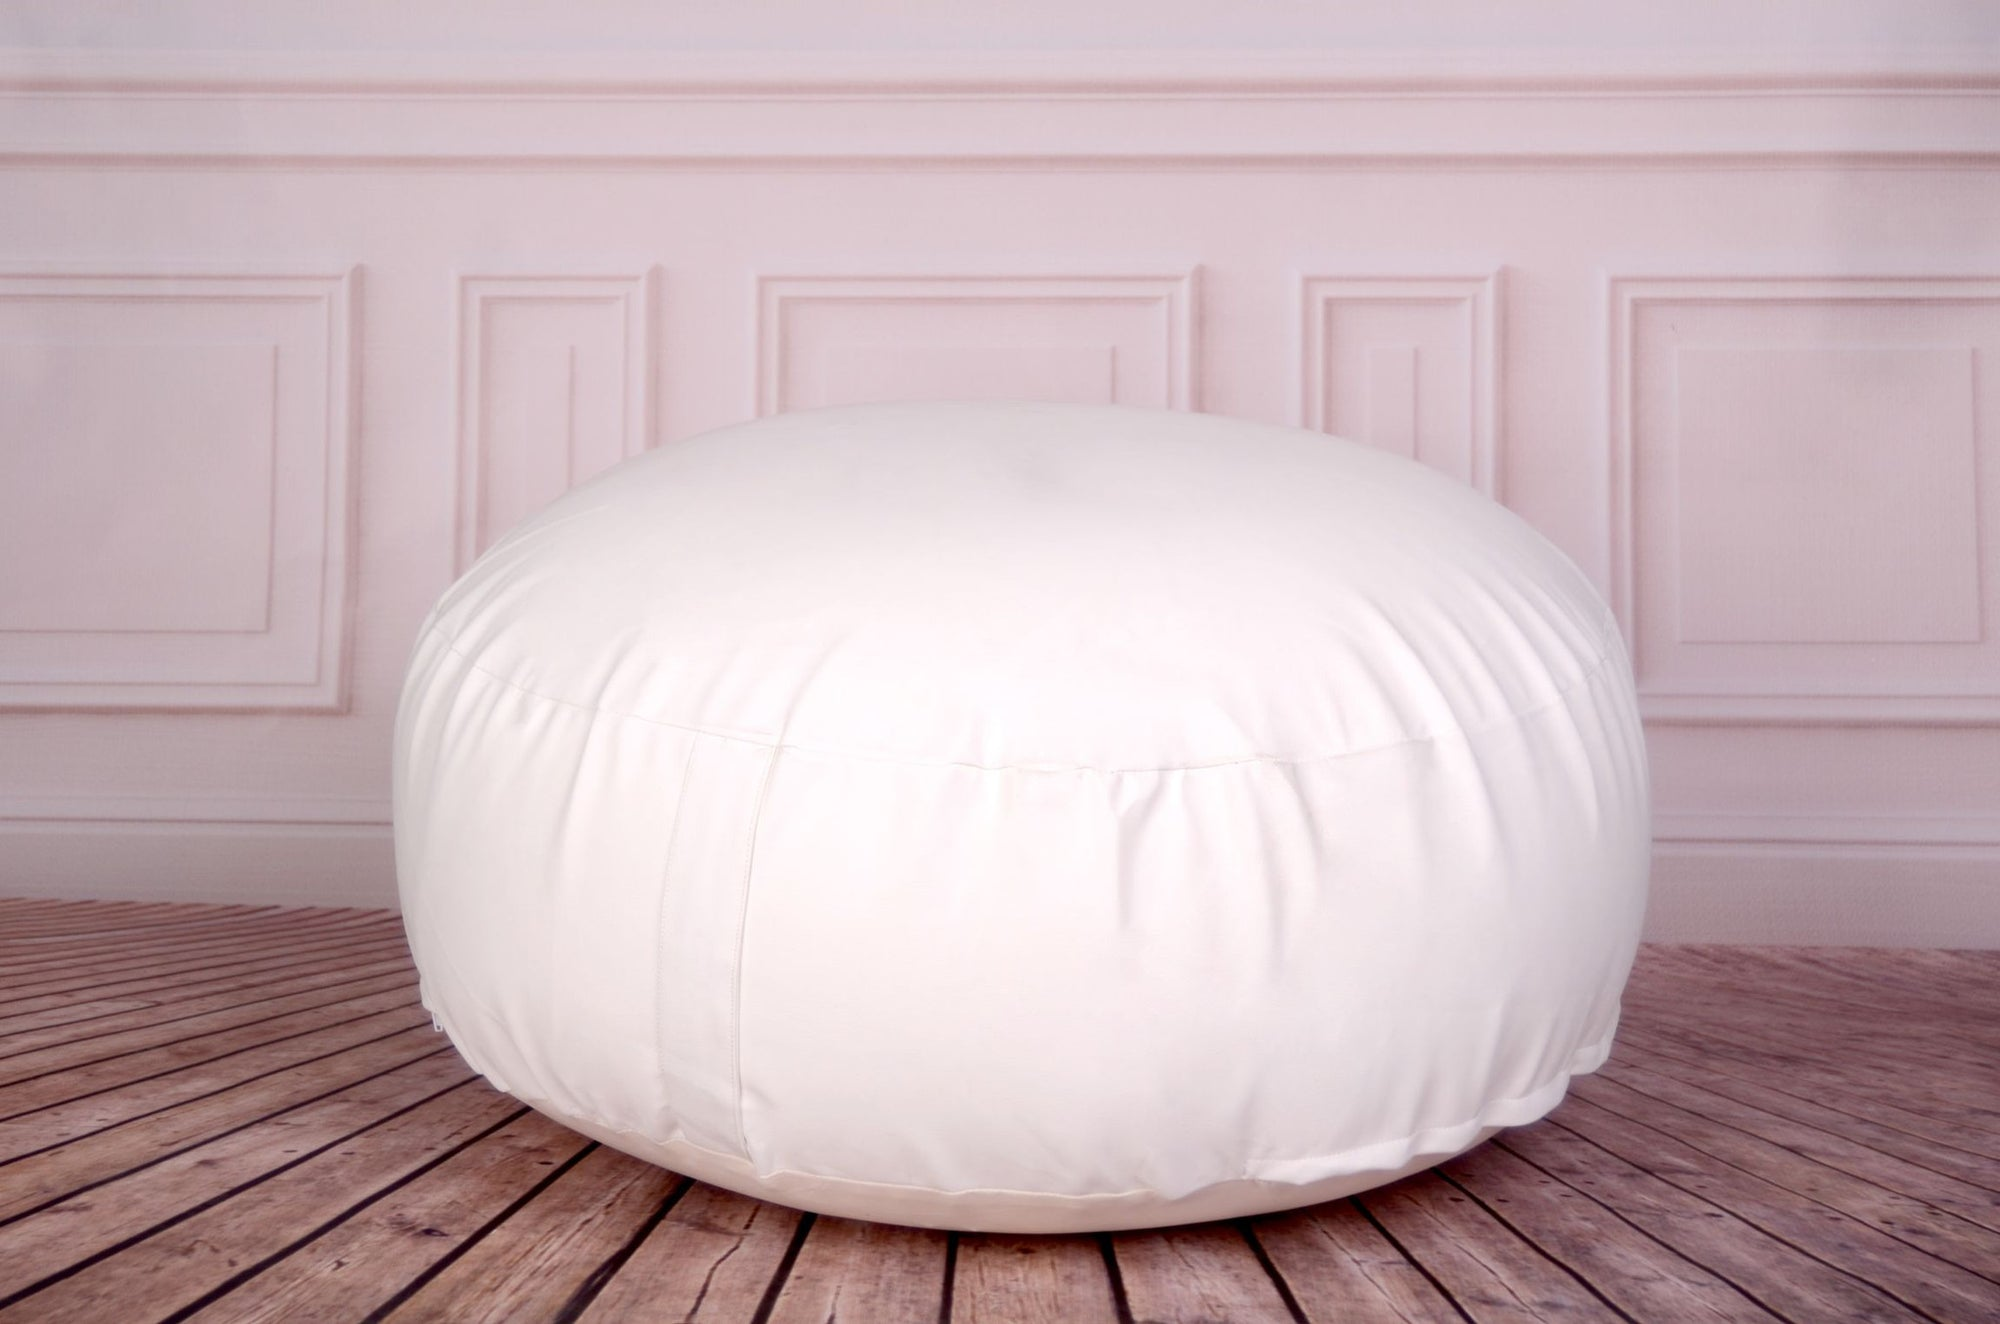 Posing Bean Bag For Newborn Photography 33in Diameter Unfilled